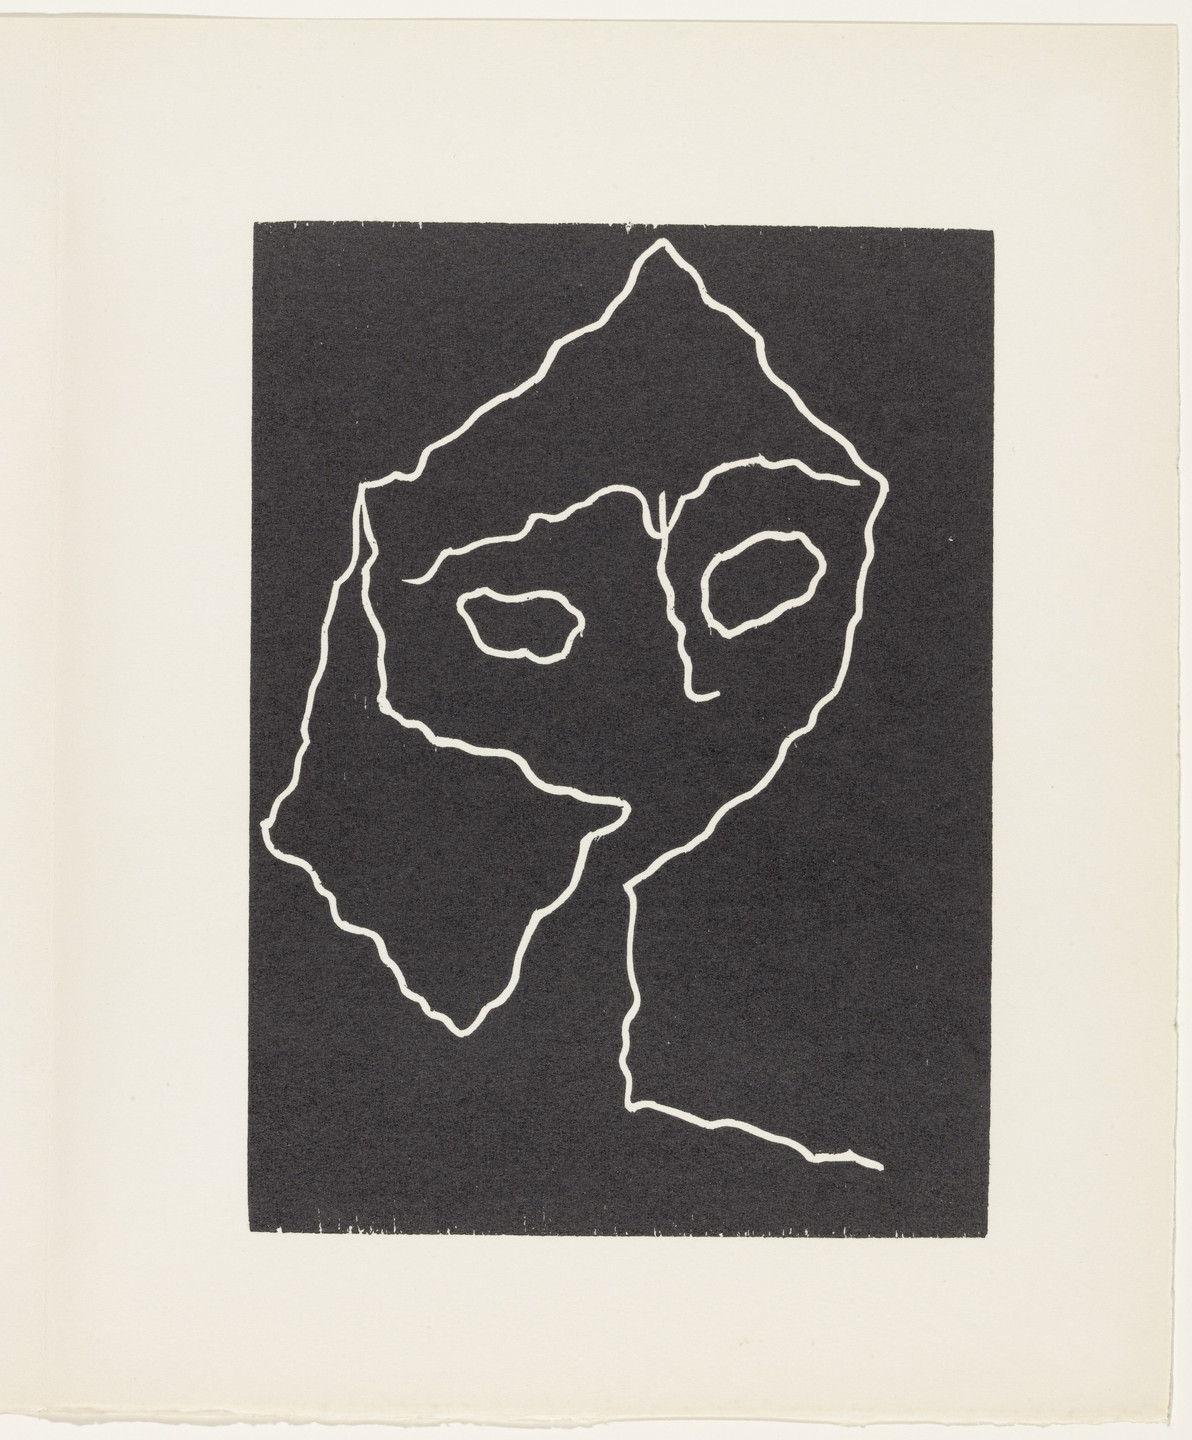 Jean (Hans) Arp. Head with Seismic Line (plate, page 115) from Dreams and Projects. 1951–52, published 1952